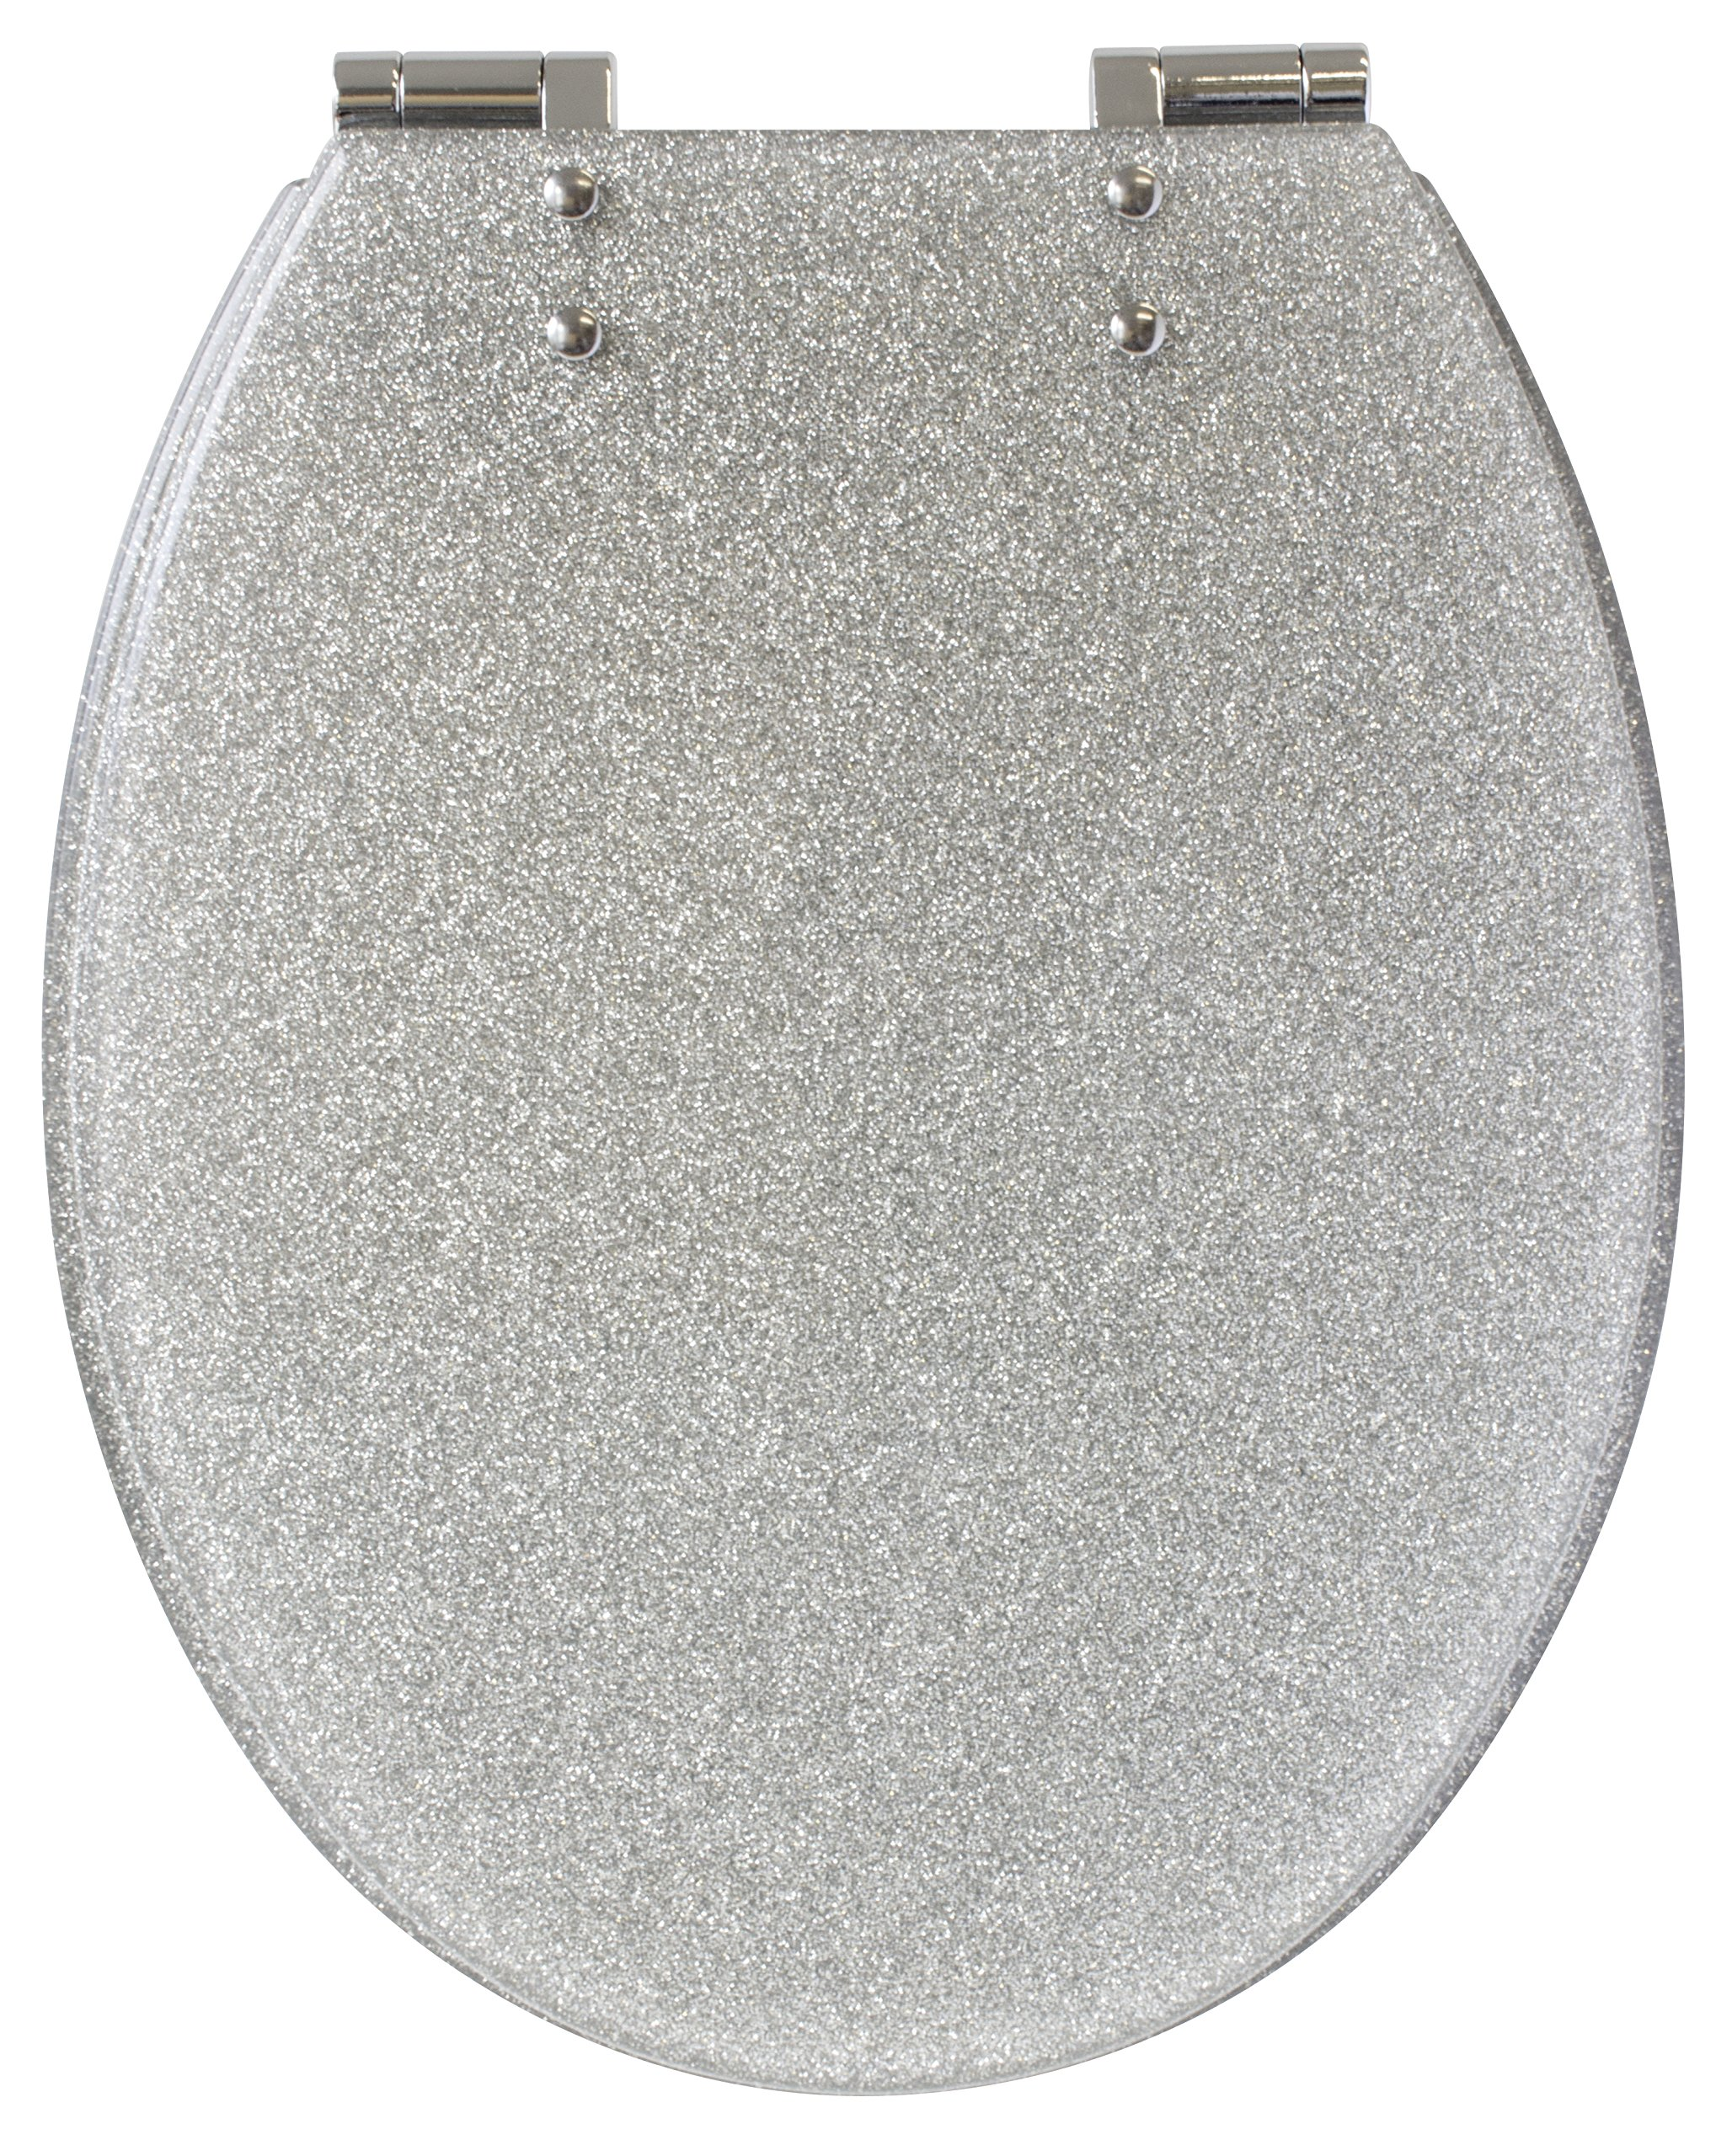 Gelco 709563Glitter Toilet Seat Slow Close Resin Silver 46x 34x 7.5cm